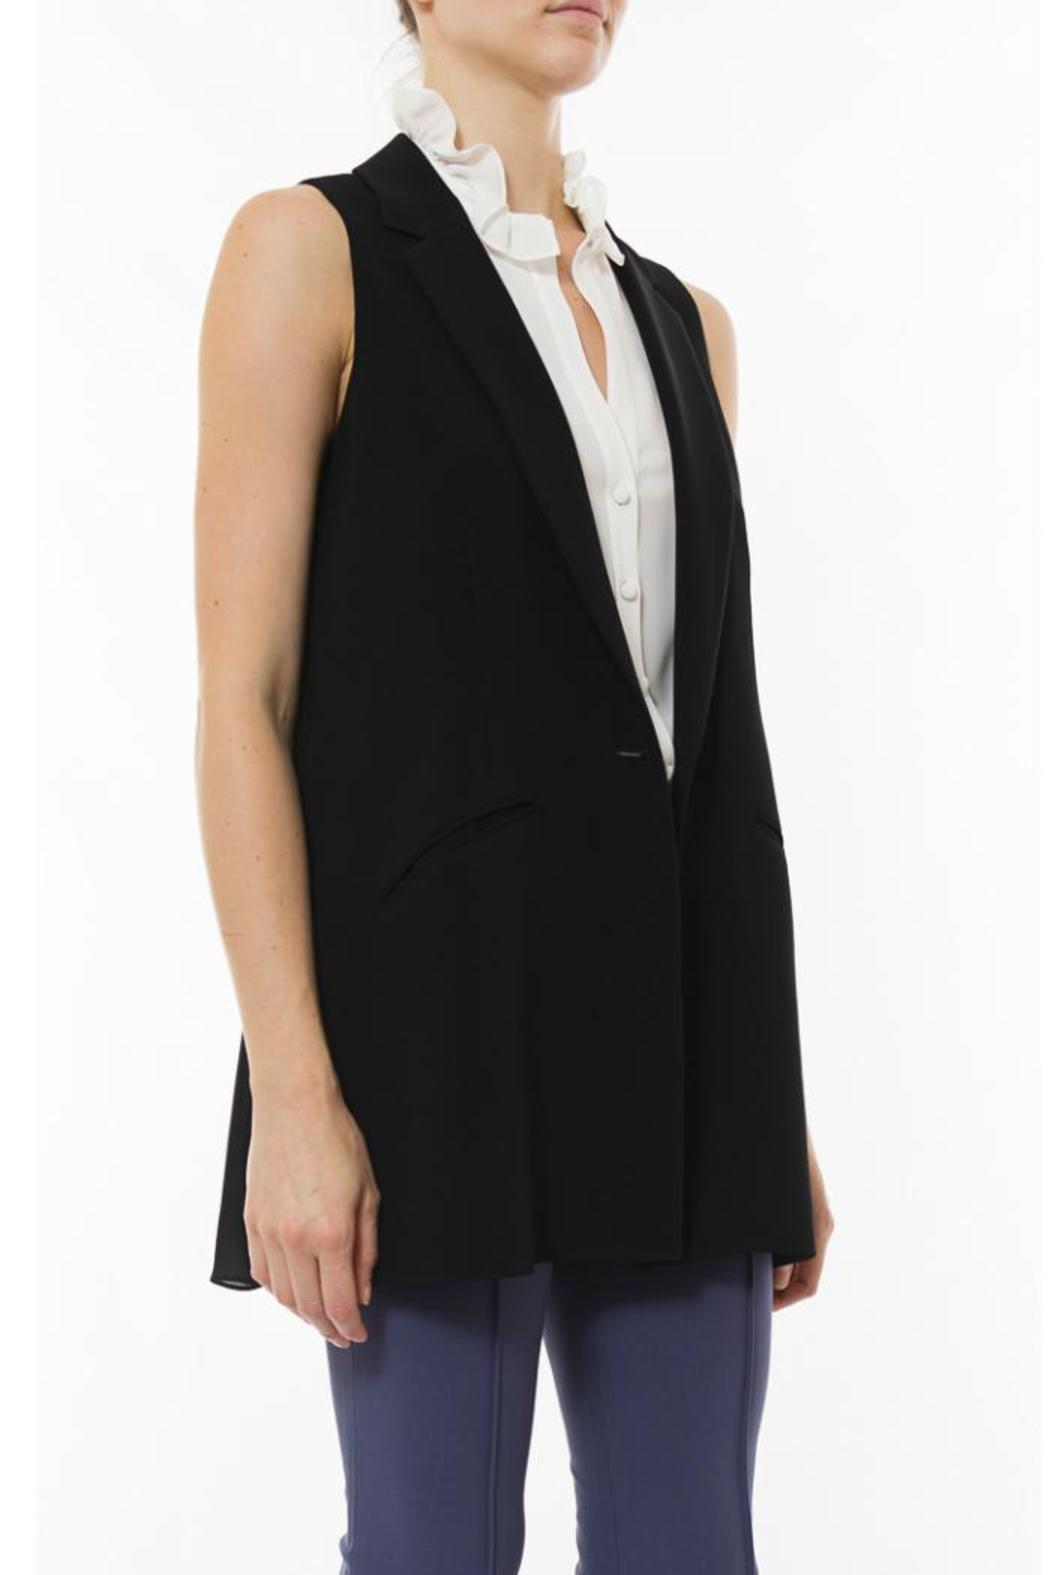 Elizabeth & James Tailored Garnet Vest - Side Cropped Image